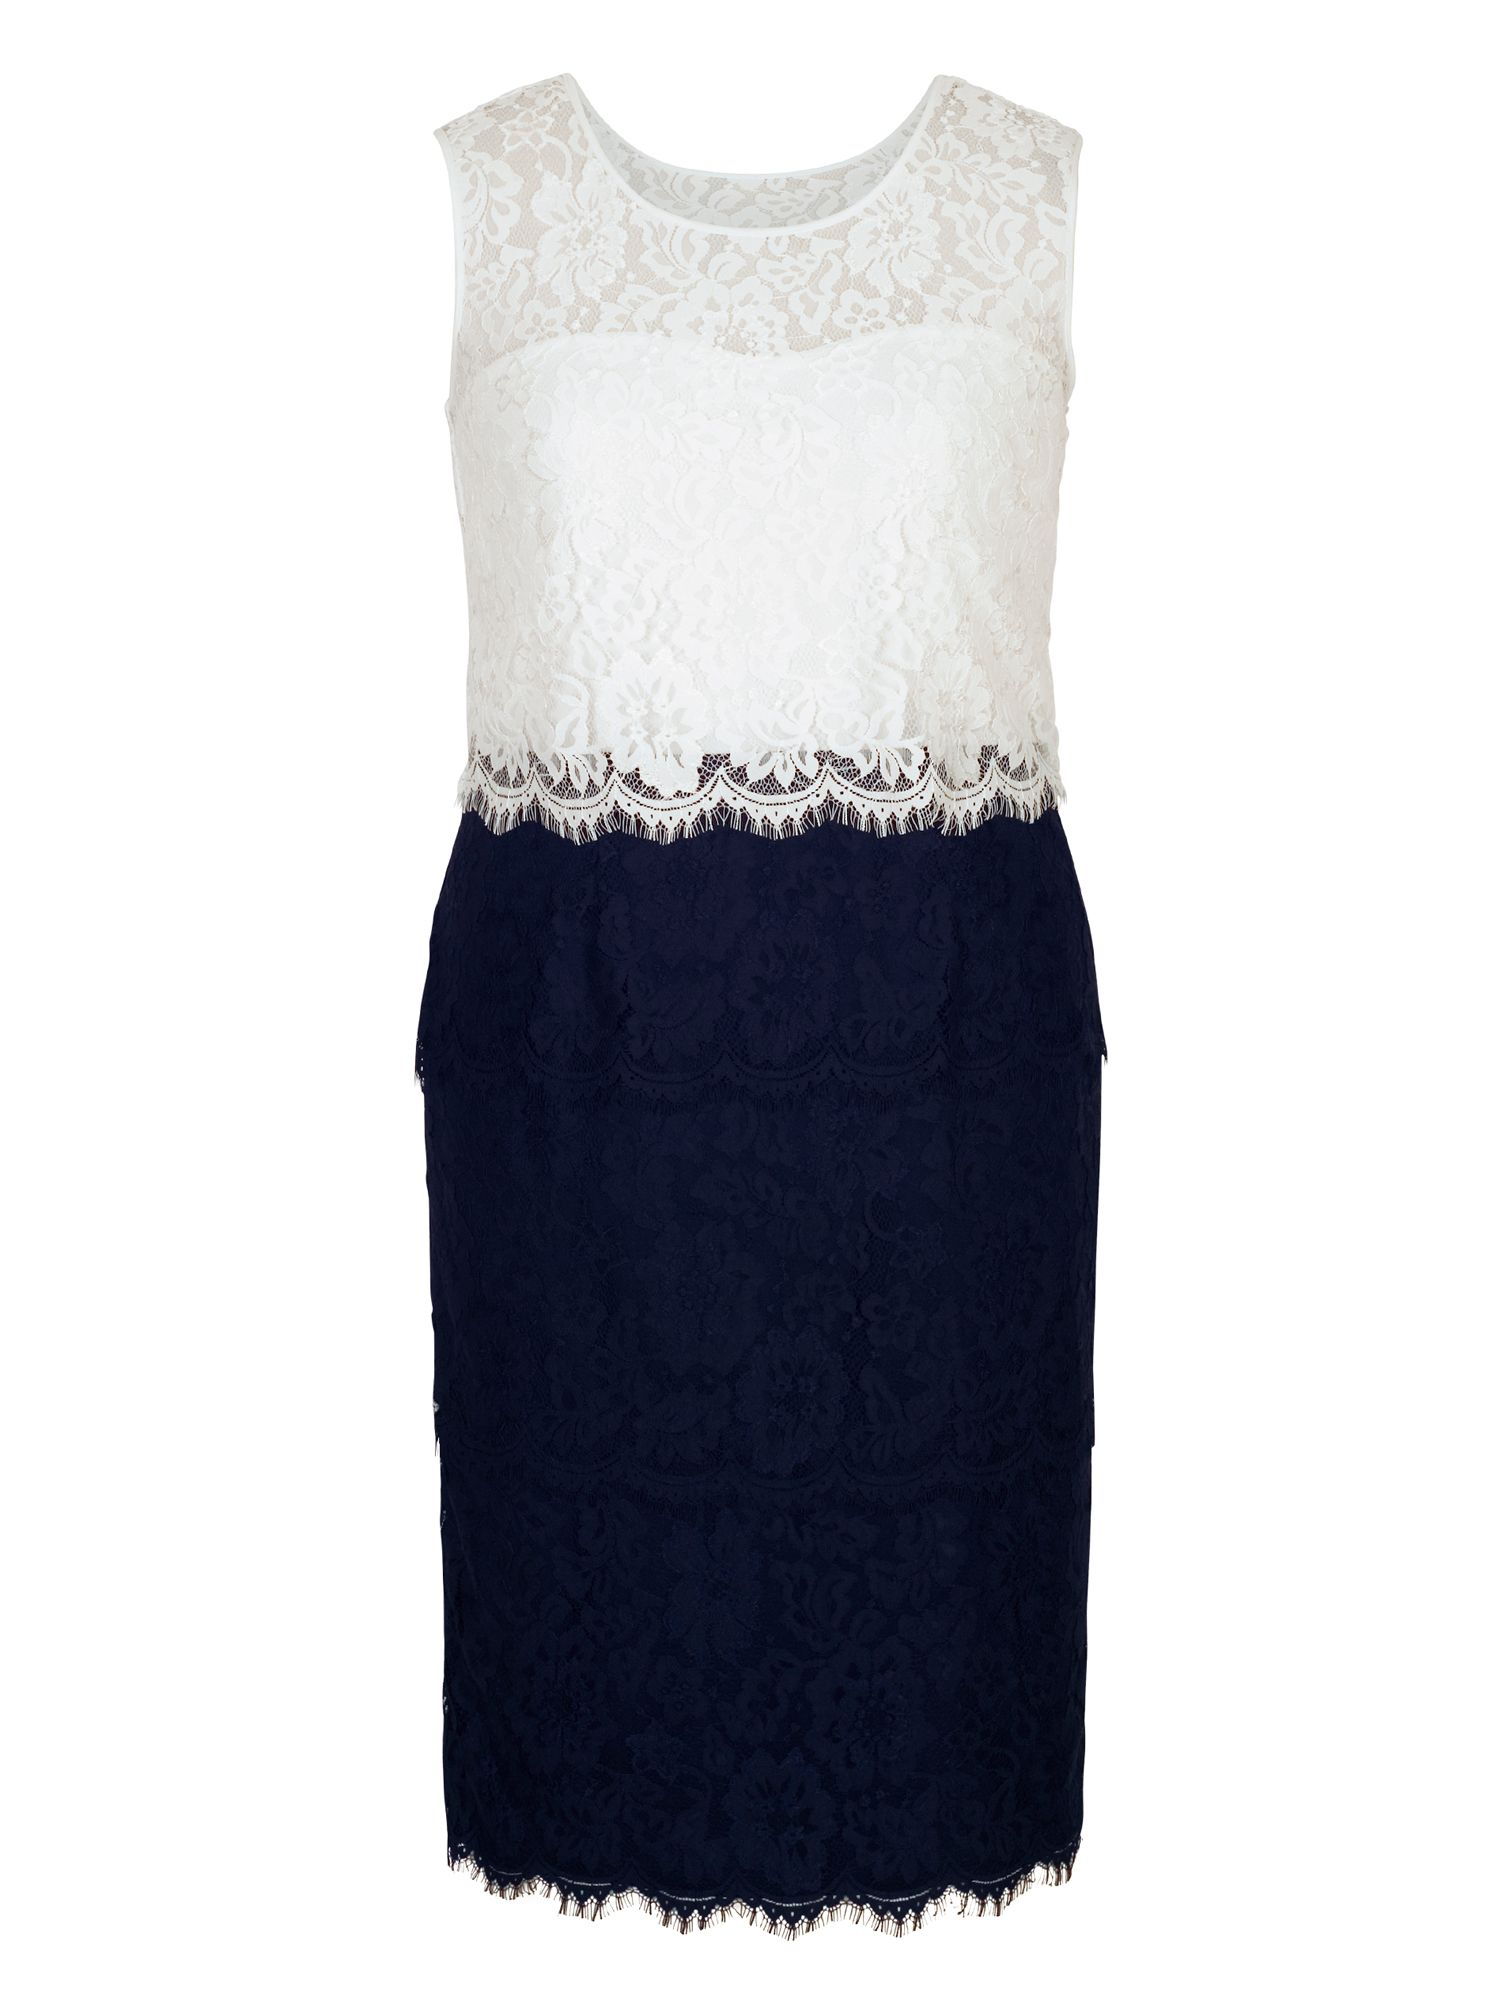 Chesca Scallop Trim Layered Lace Dress, Blue